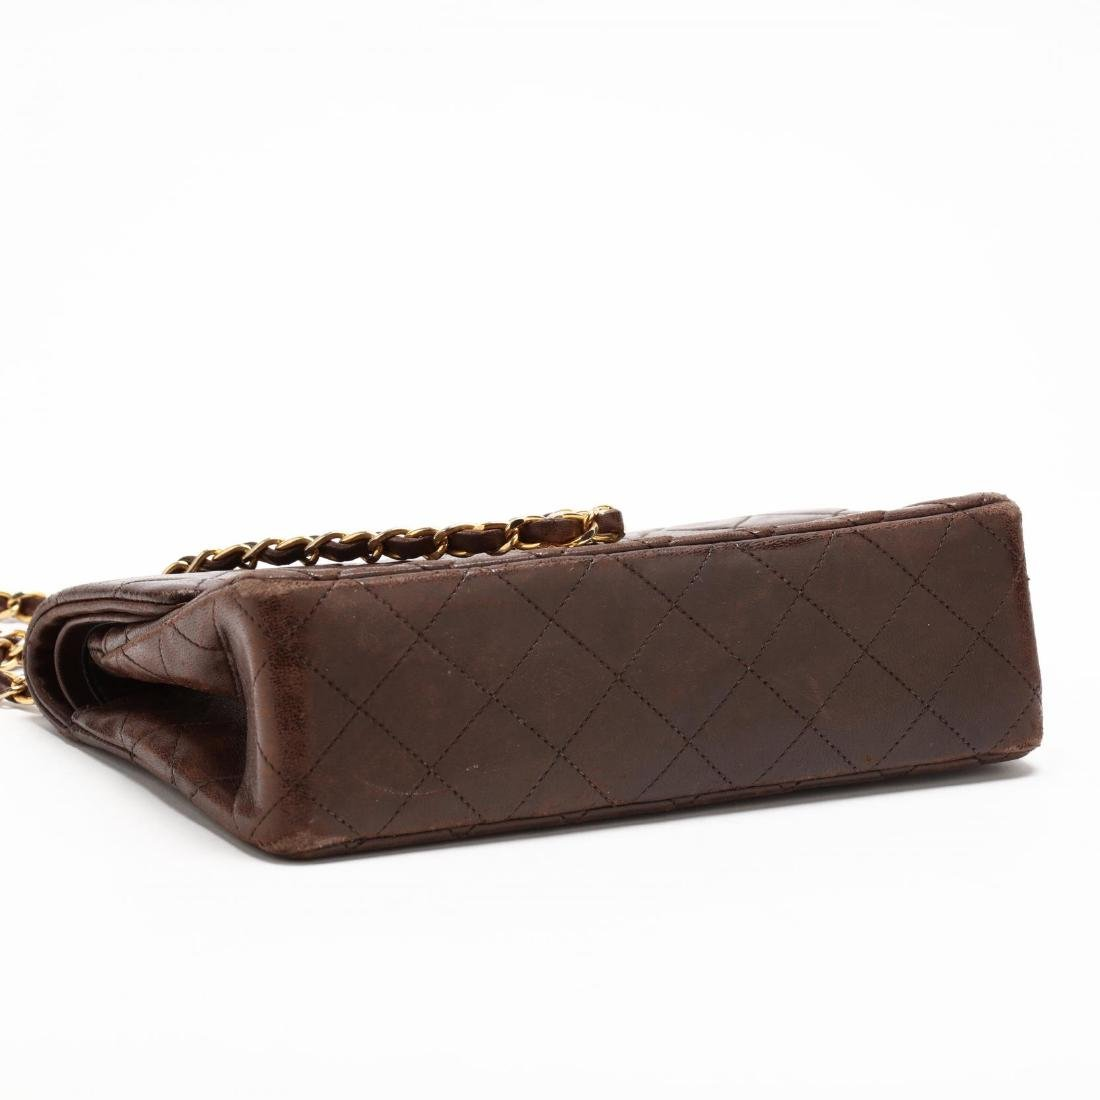 Classic Small Double Flap Shoulder Bag, Chanel - 3